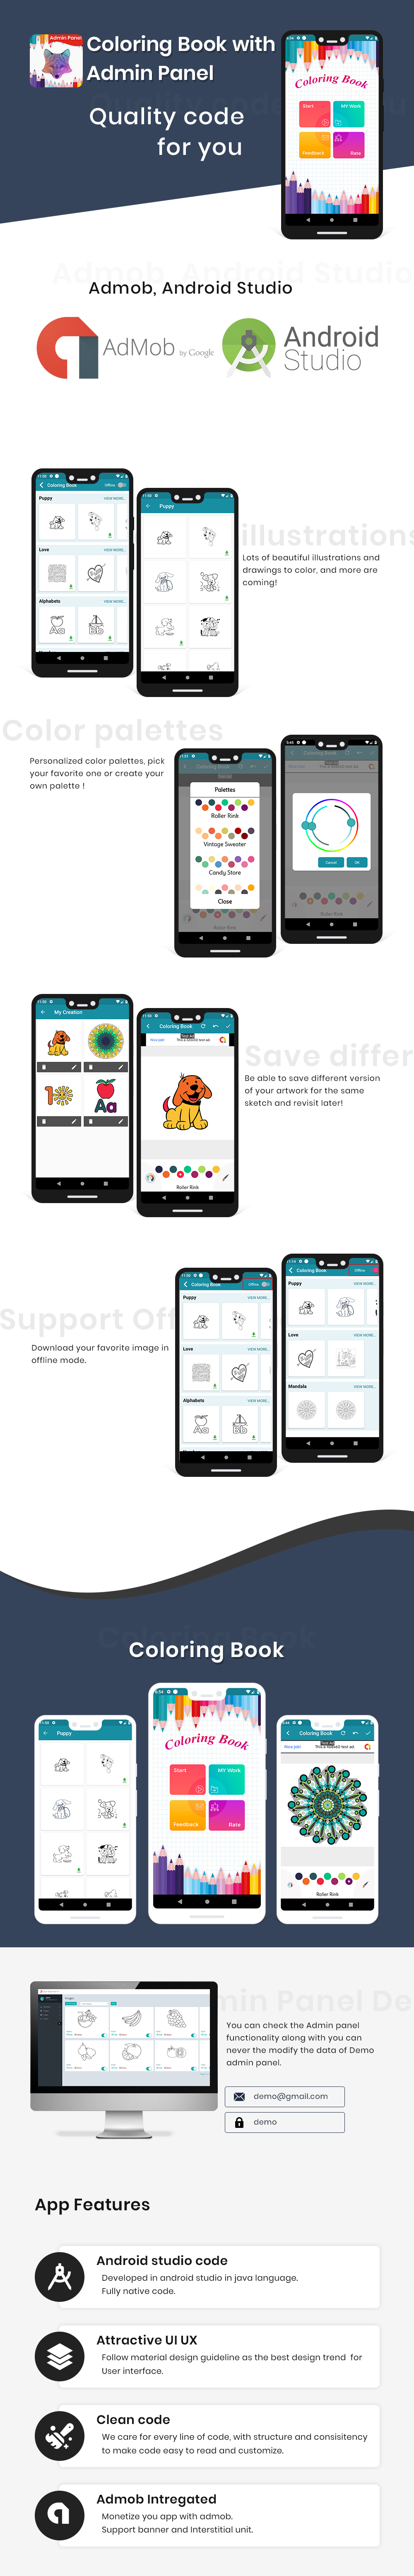 Coloring Book Android with Admin panel & Admob ready for publish - 6